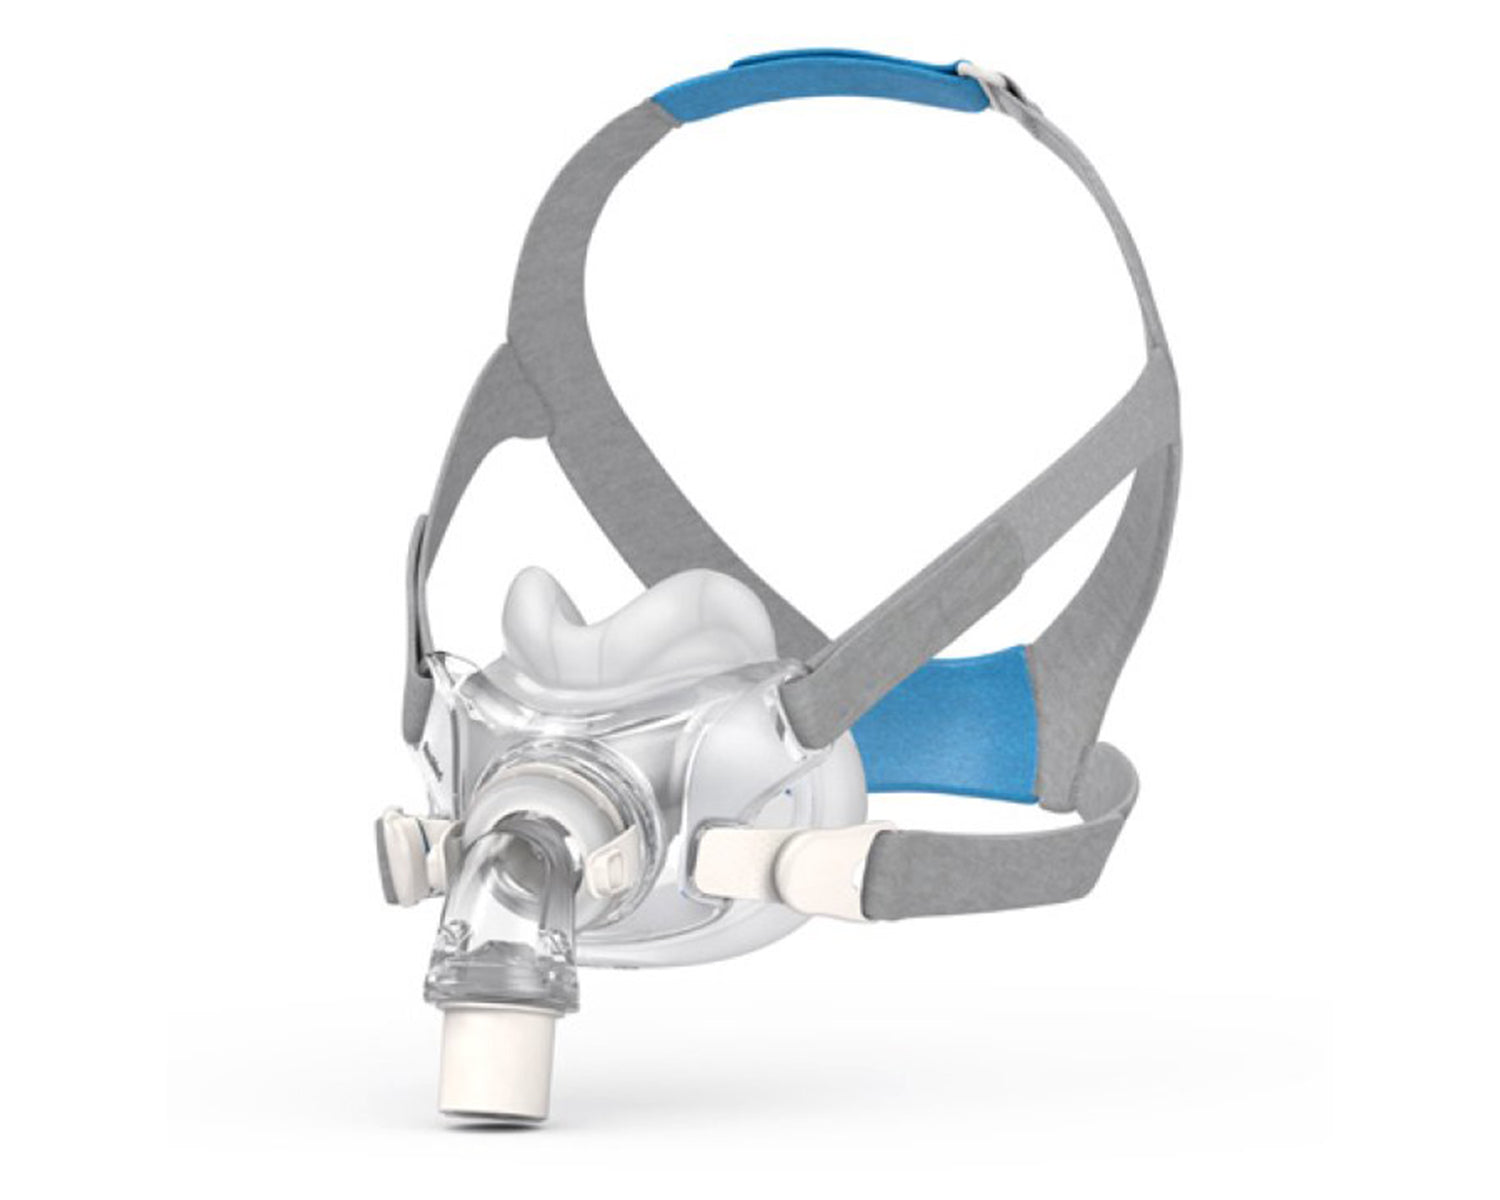 ResMed AirFit F30 Full Face CPAP Mask angle view